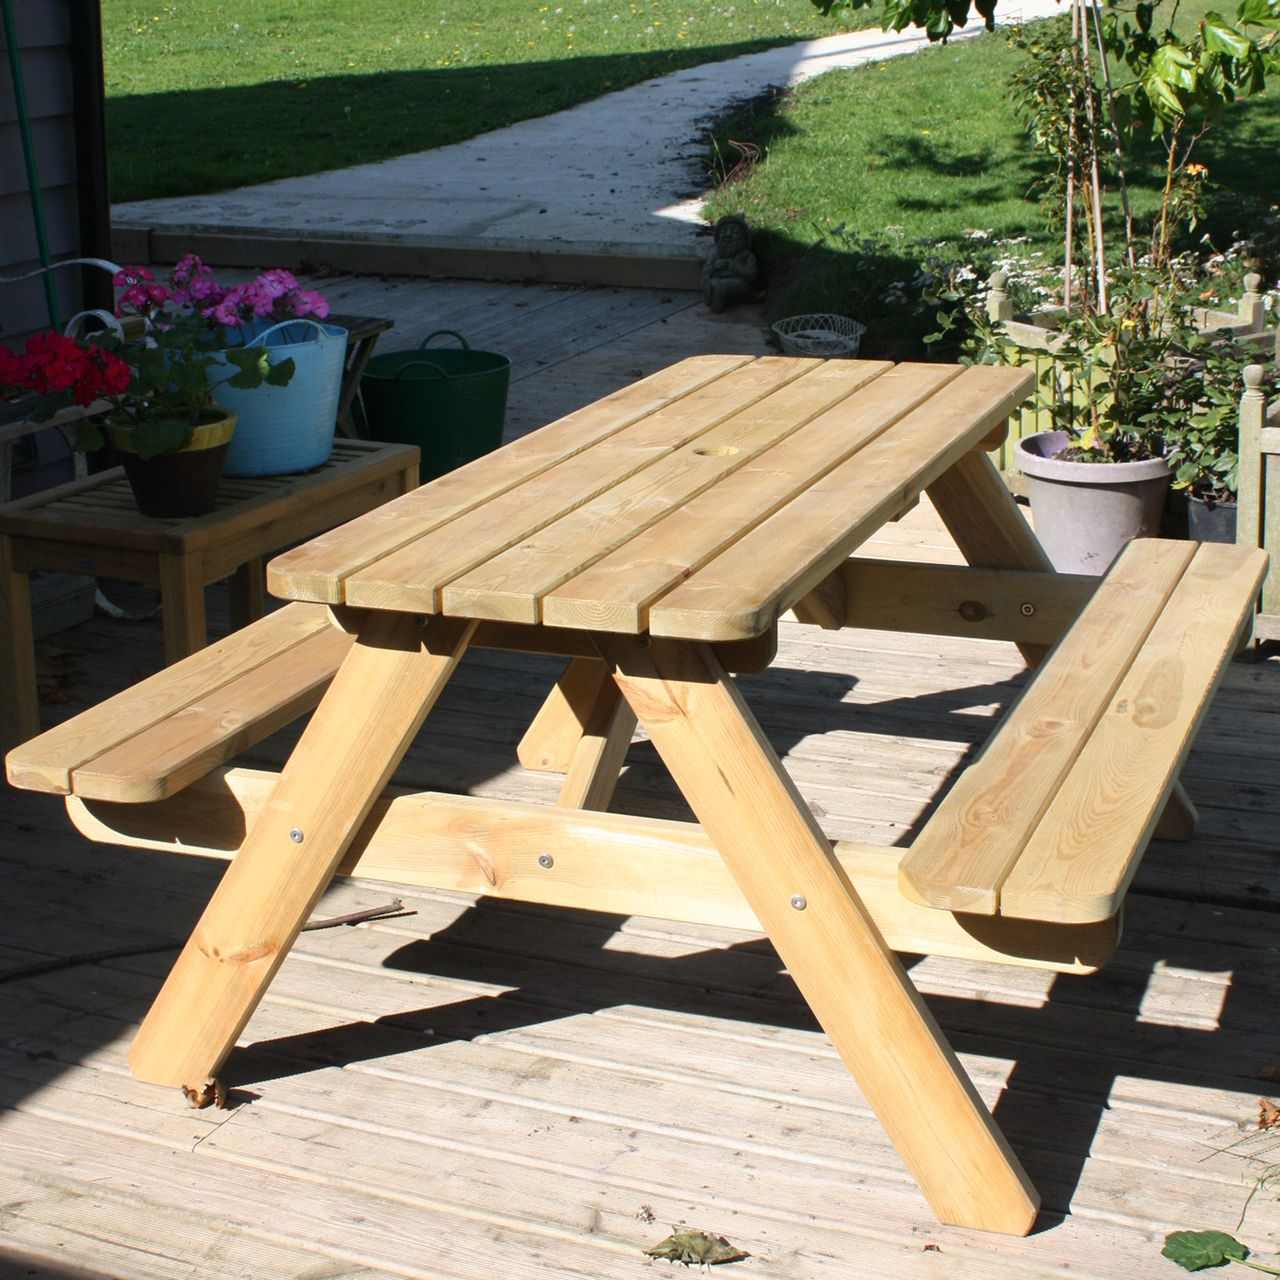 Wooden picnic table 6 seat 1400mm for gardens parks schools and pubs piggy garden